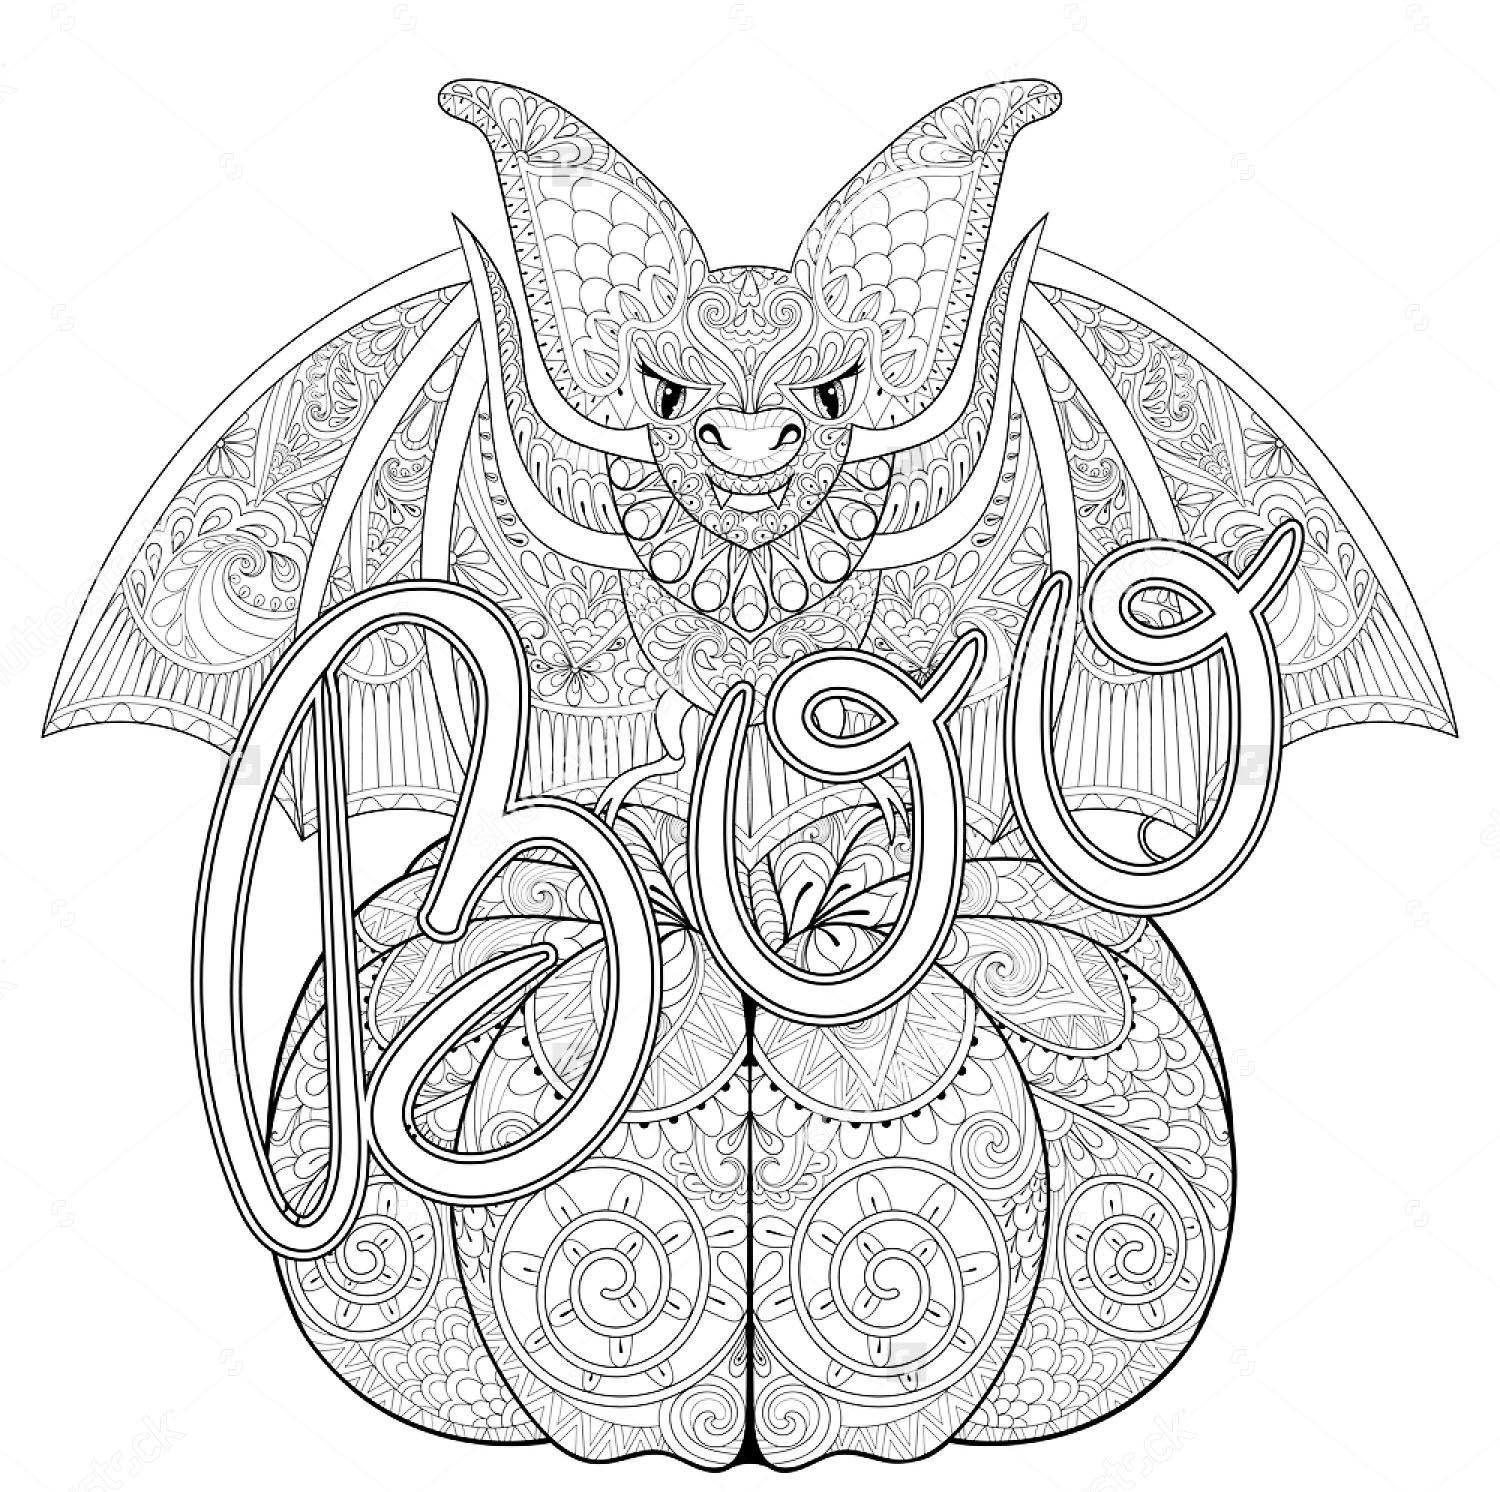 Free printable zentangle coloring pages for adults - Coloring Adult Halloween Zentangle Bat